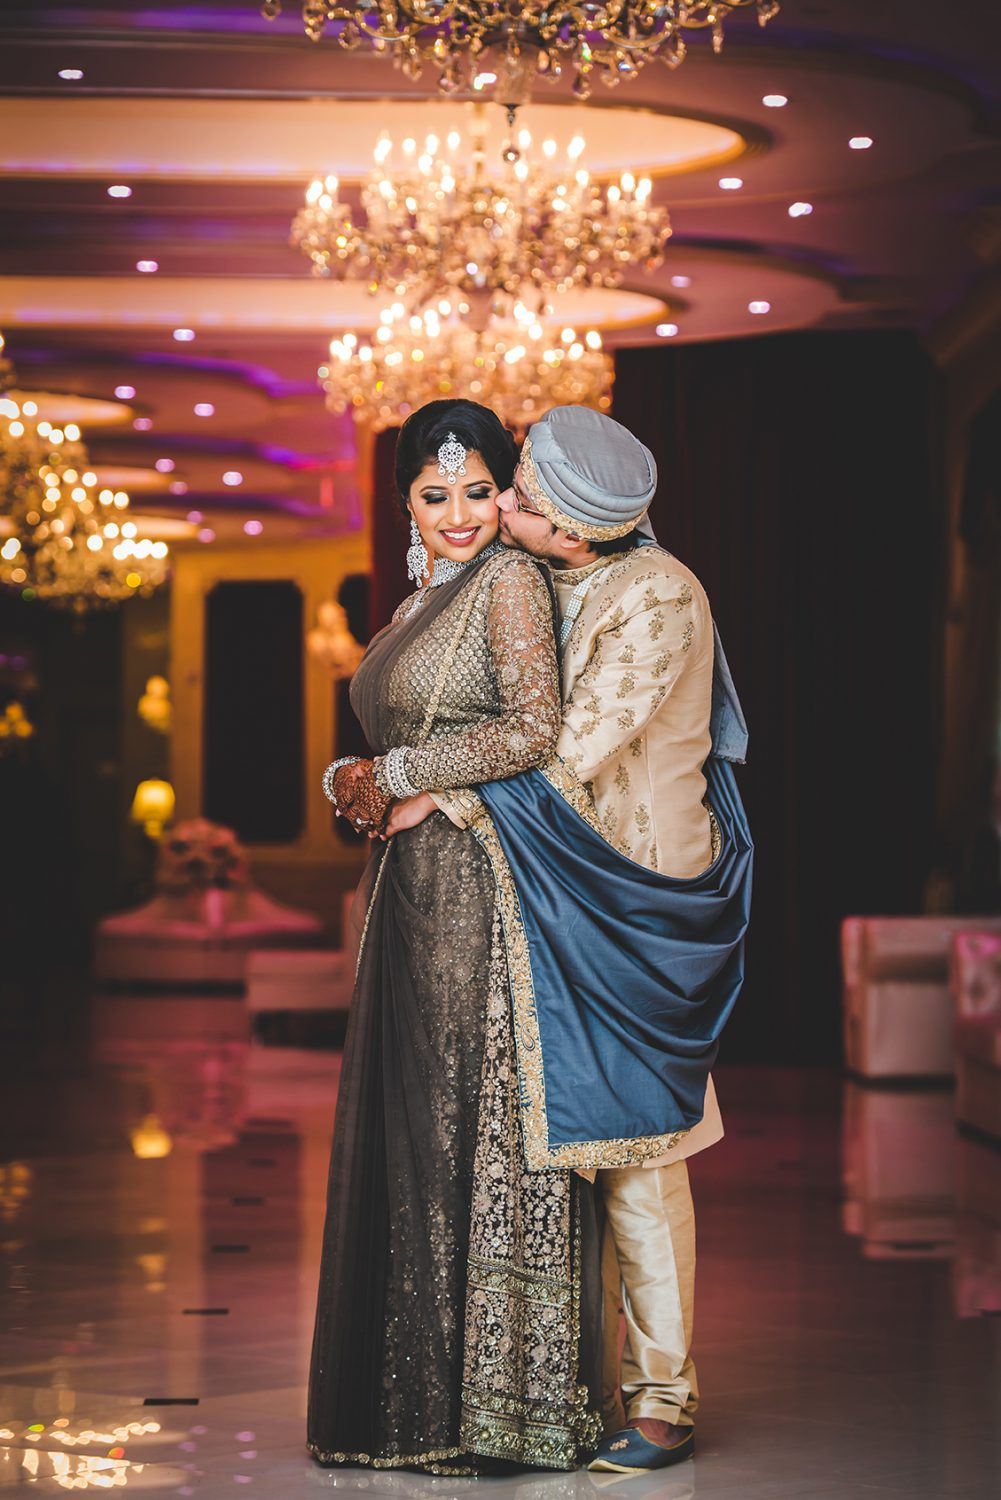 south_asian_wedding_photography_dhoom_studio_new_york83-e1573099401642 SOUTH ASIAN WEDDINGS